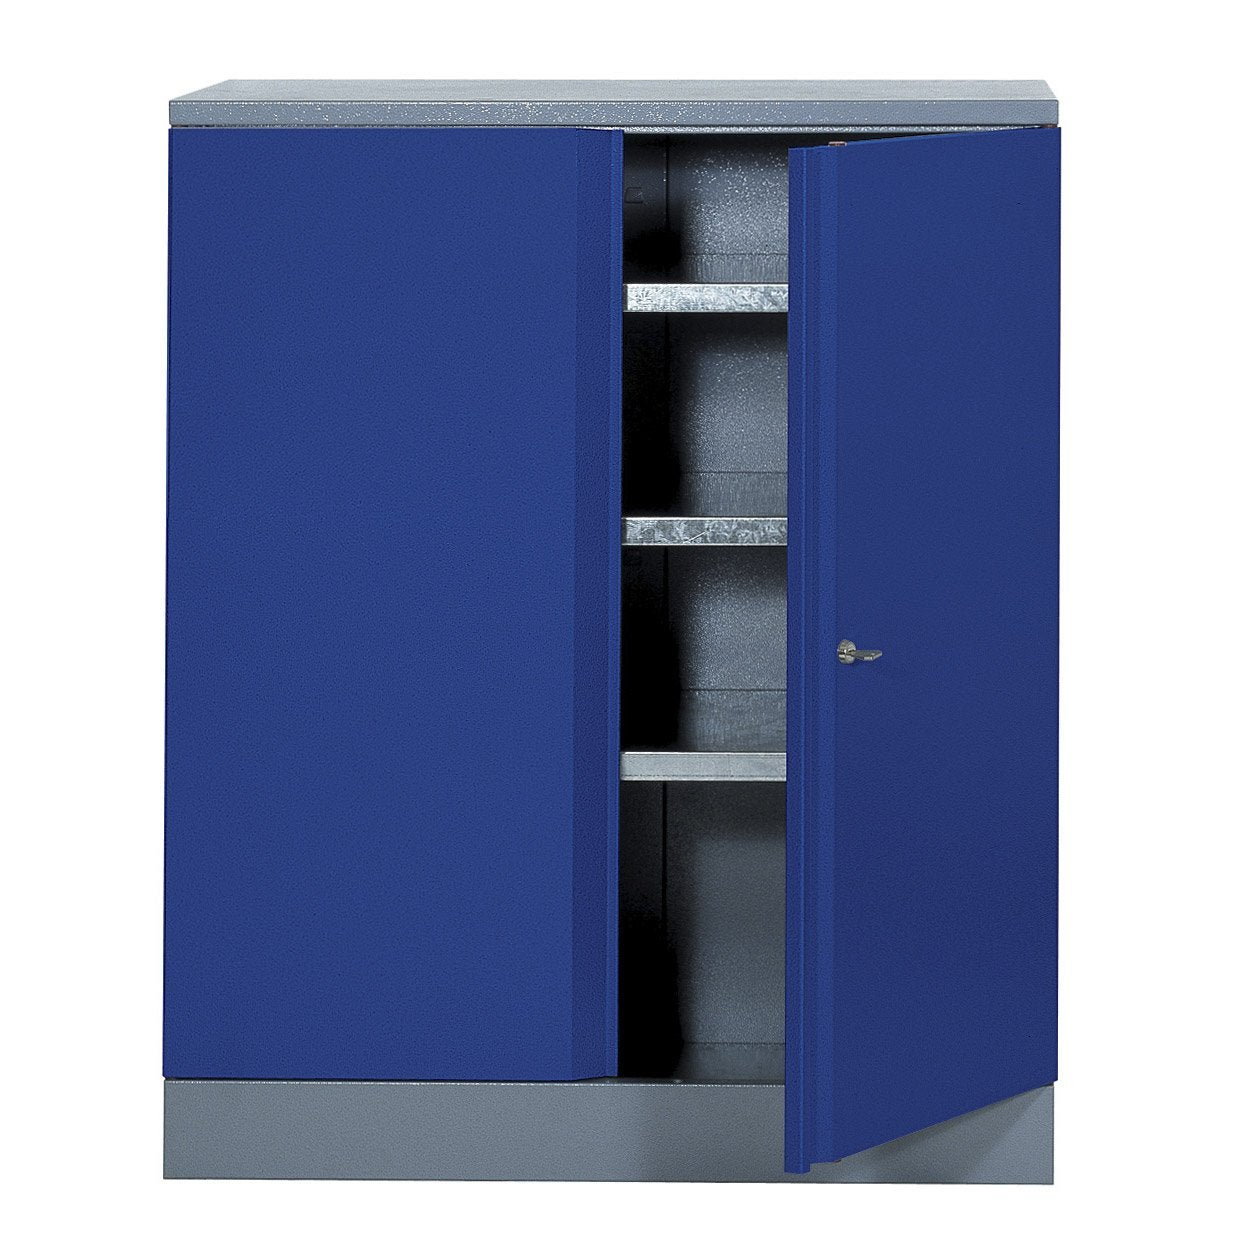 armoire de rangement en m tal bleu kupper 91 cm 1 porte. Black Bedroom Furniture Sets. Home Design Ideas